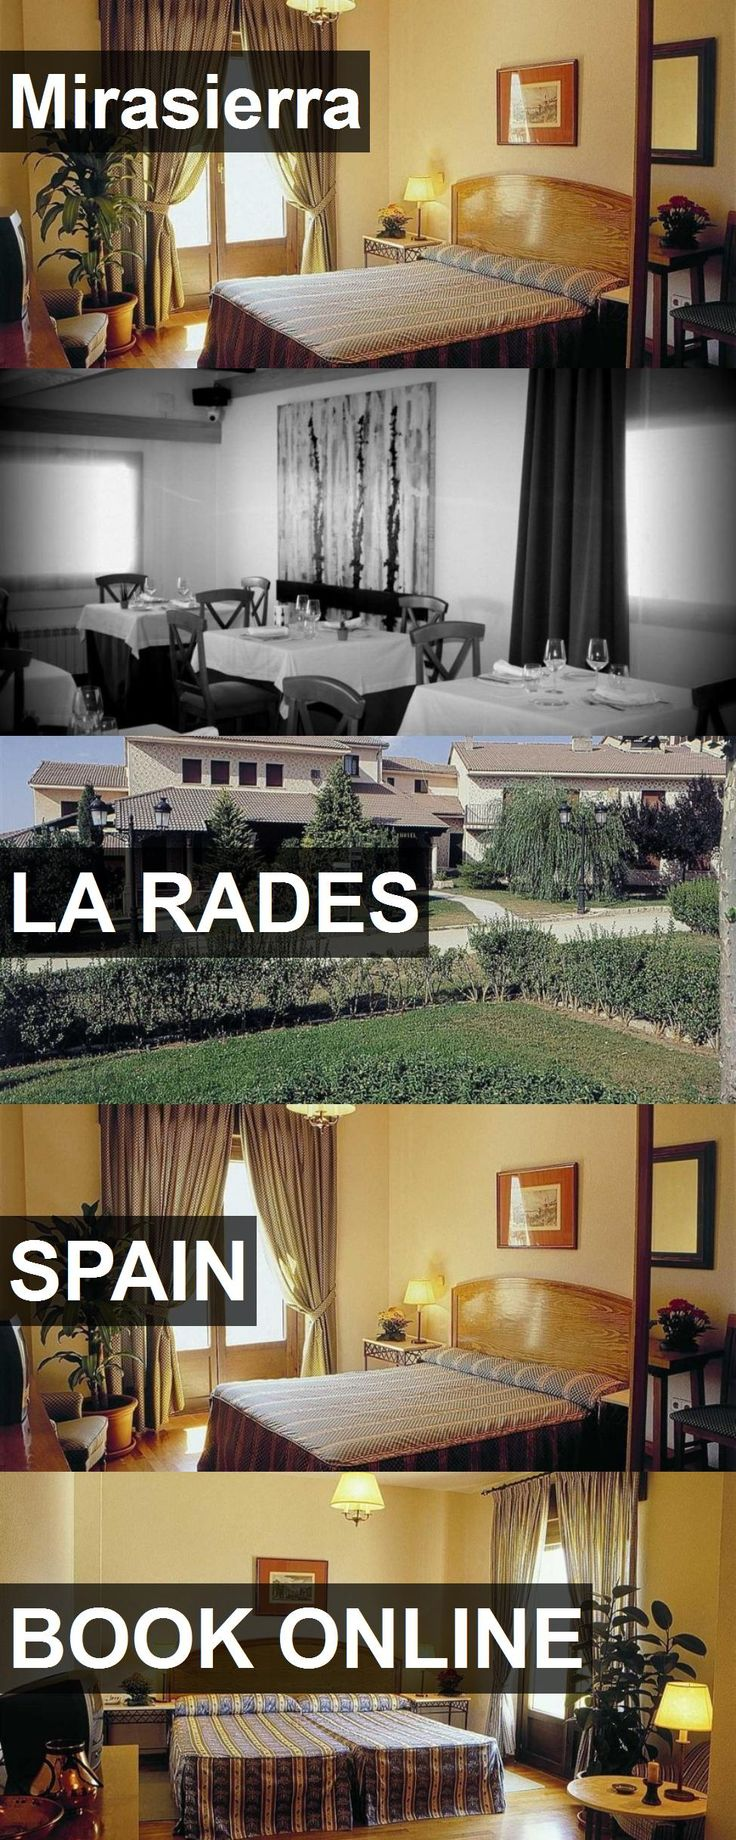 Hotel Mirasierra in La Rades, Spain. For more information, photos, reviews and best prices please follow the link. #Spain #LaRades #travel #vacation #hotel